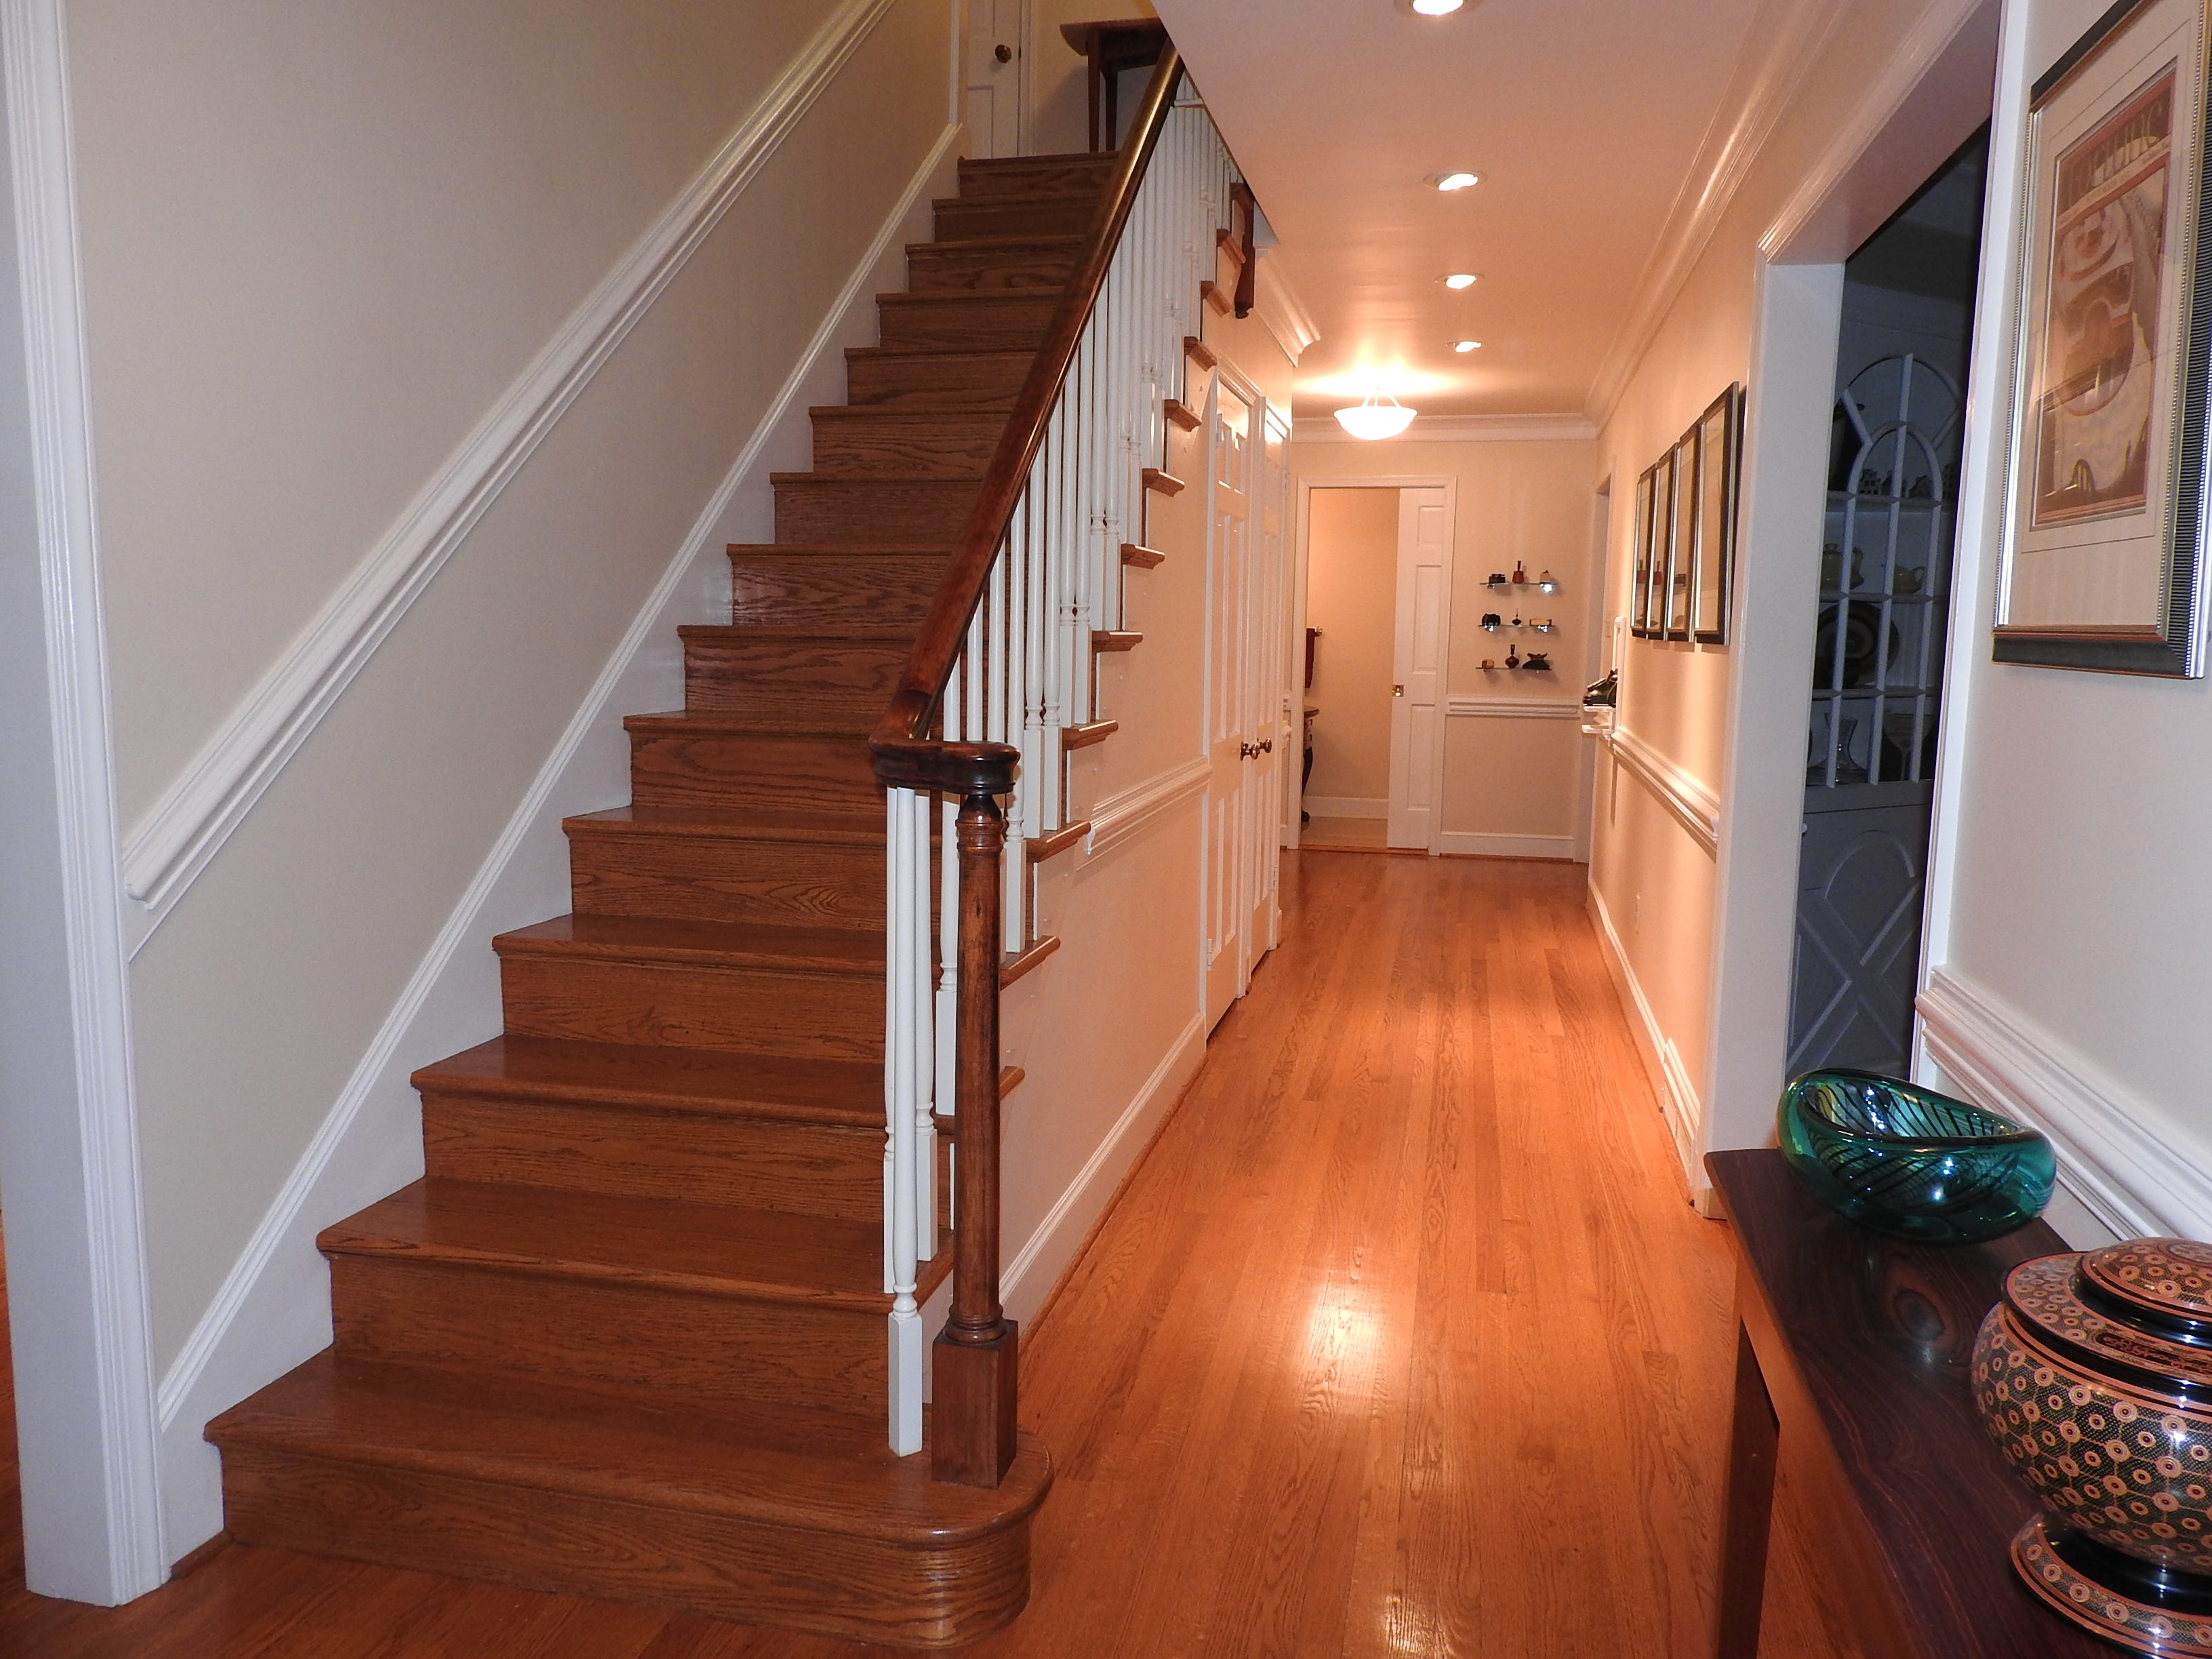 All of the oak floors throughout 103 Edgewood Road in Alapocas have been refinished.